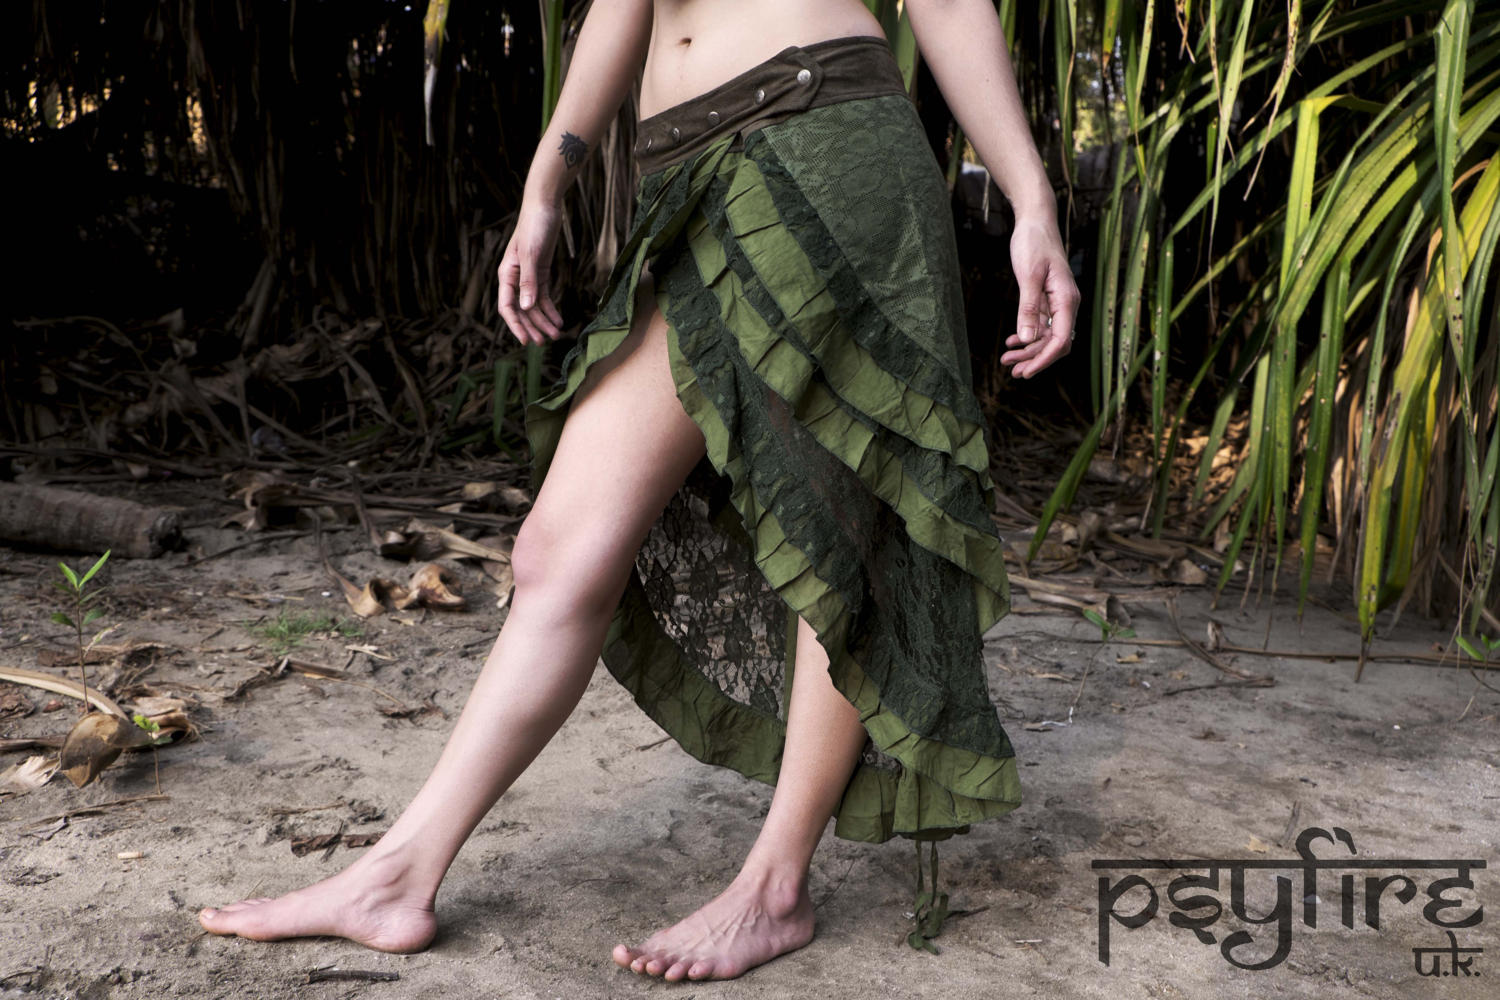 GREEN PIXIE Skirt - Lace Skirt, Festival Skirt, Long Skirt, Gypsy Skirt, Bellydance Skirt, Full Length Hippie Skirt, Short Skirt, Psytrance